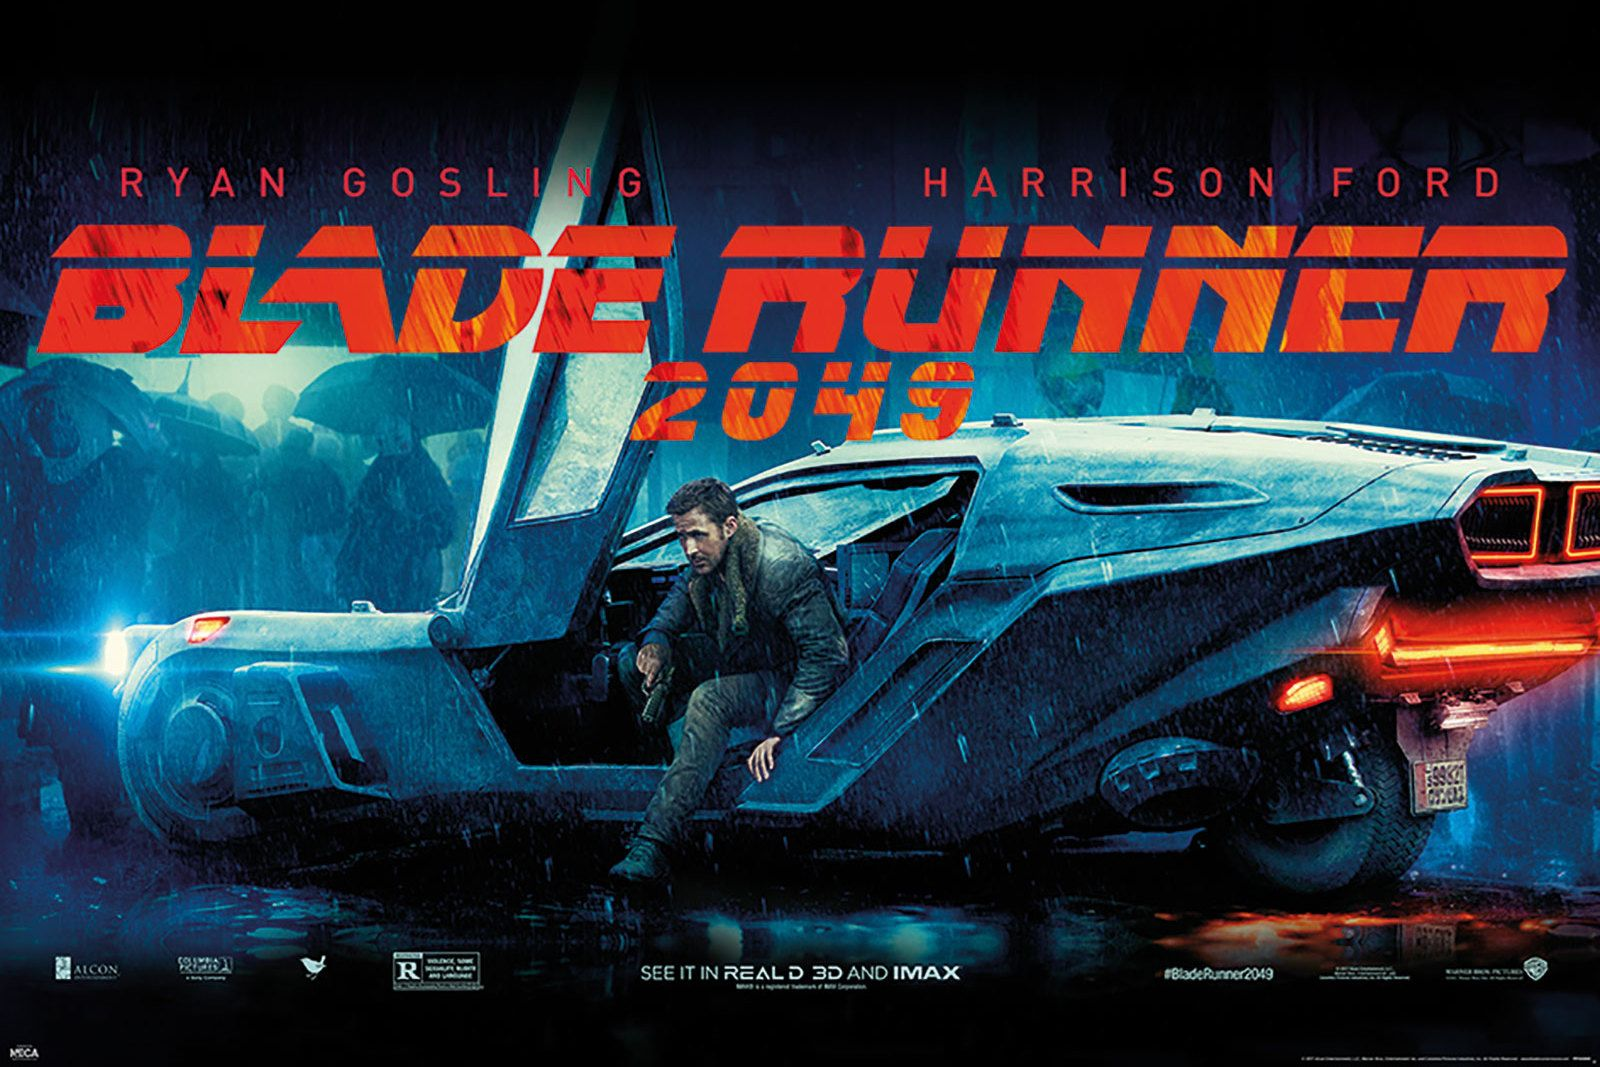 Blade Runner 2049 Flying Car Plakat Z Filmu